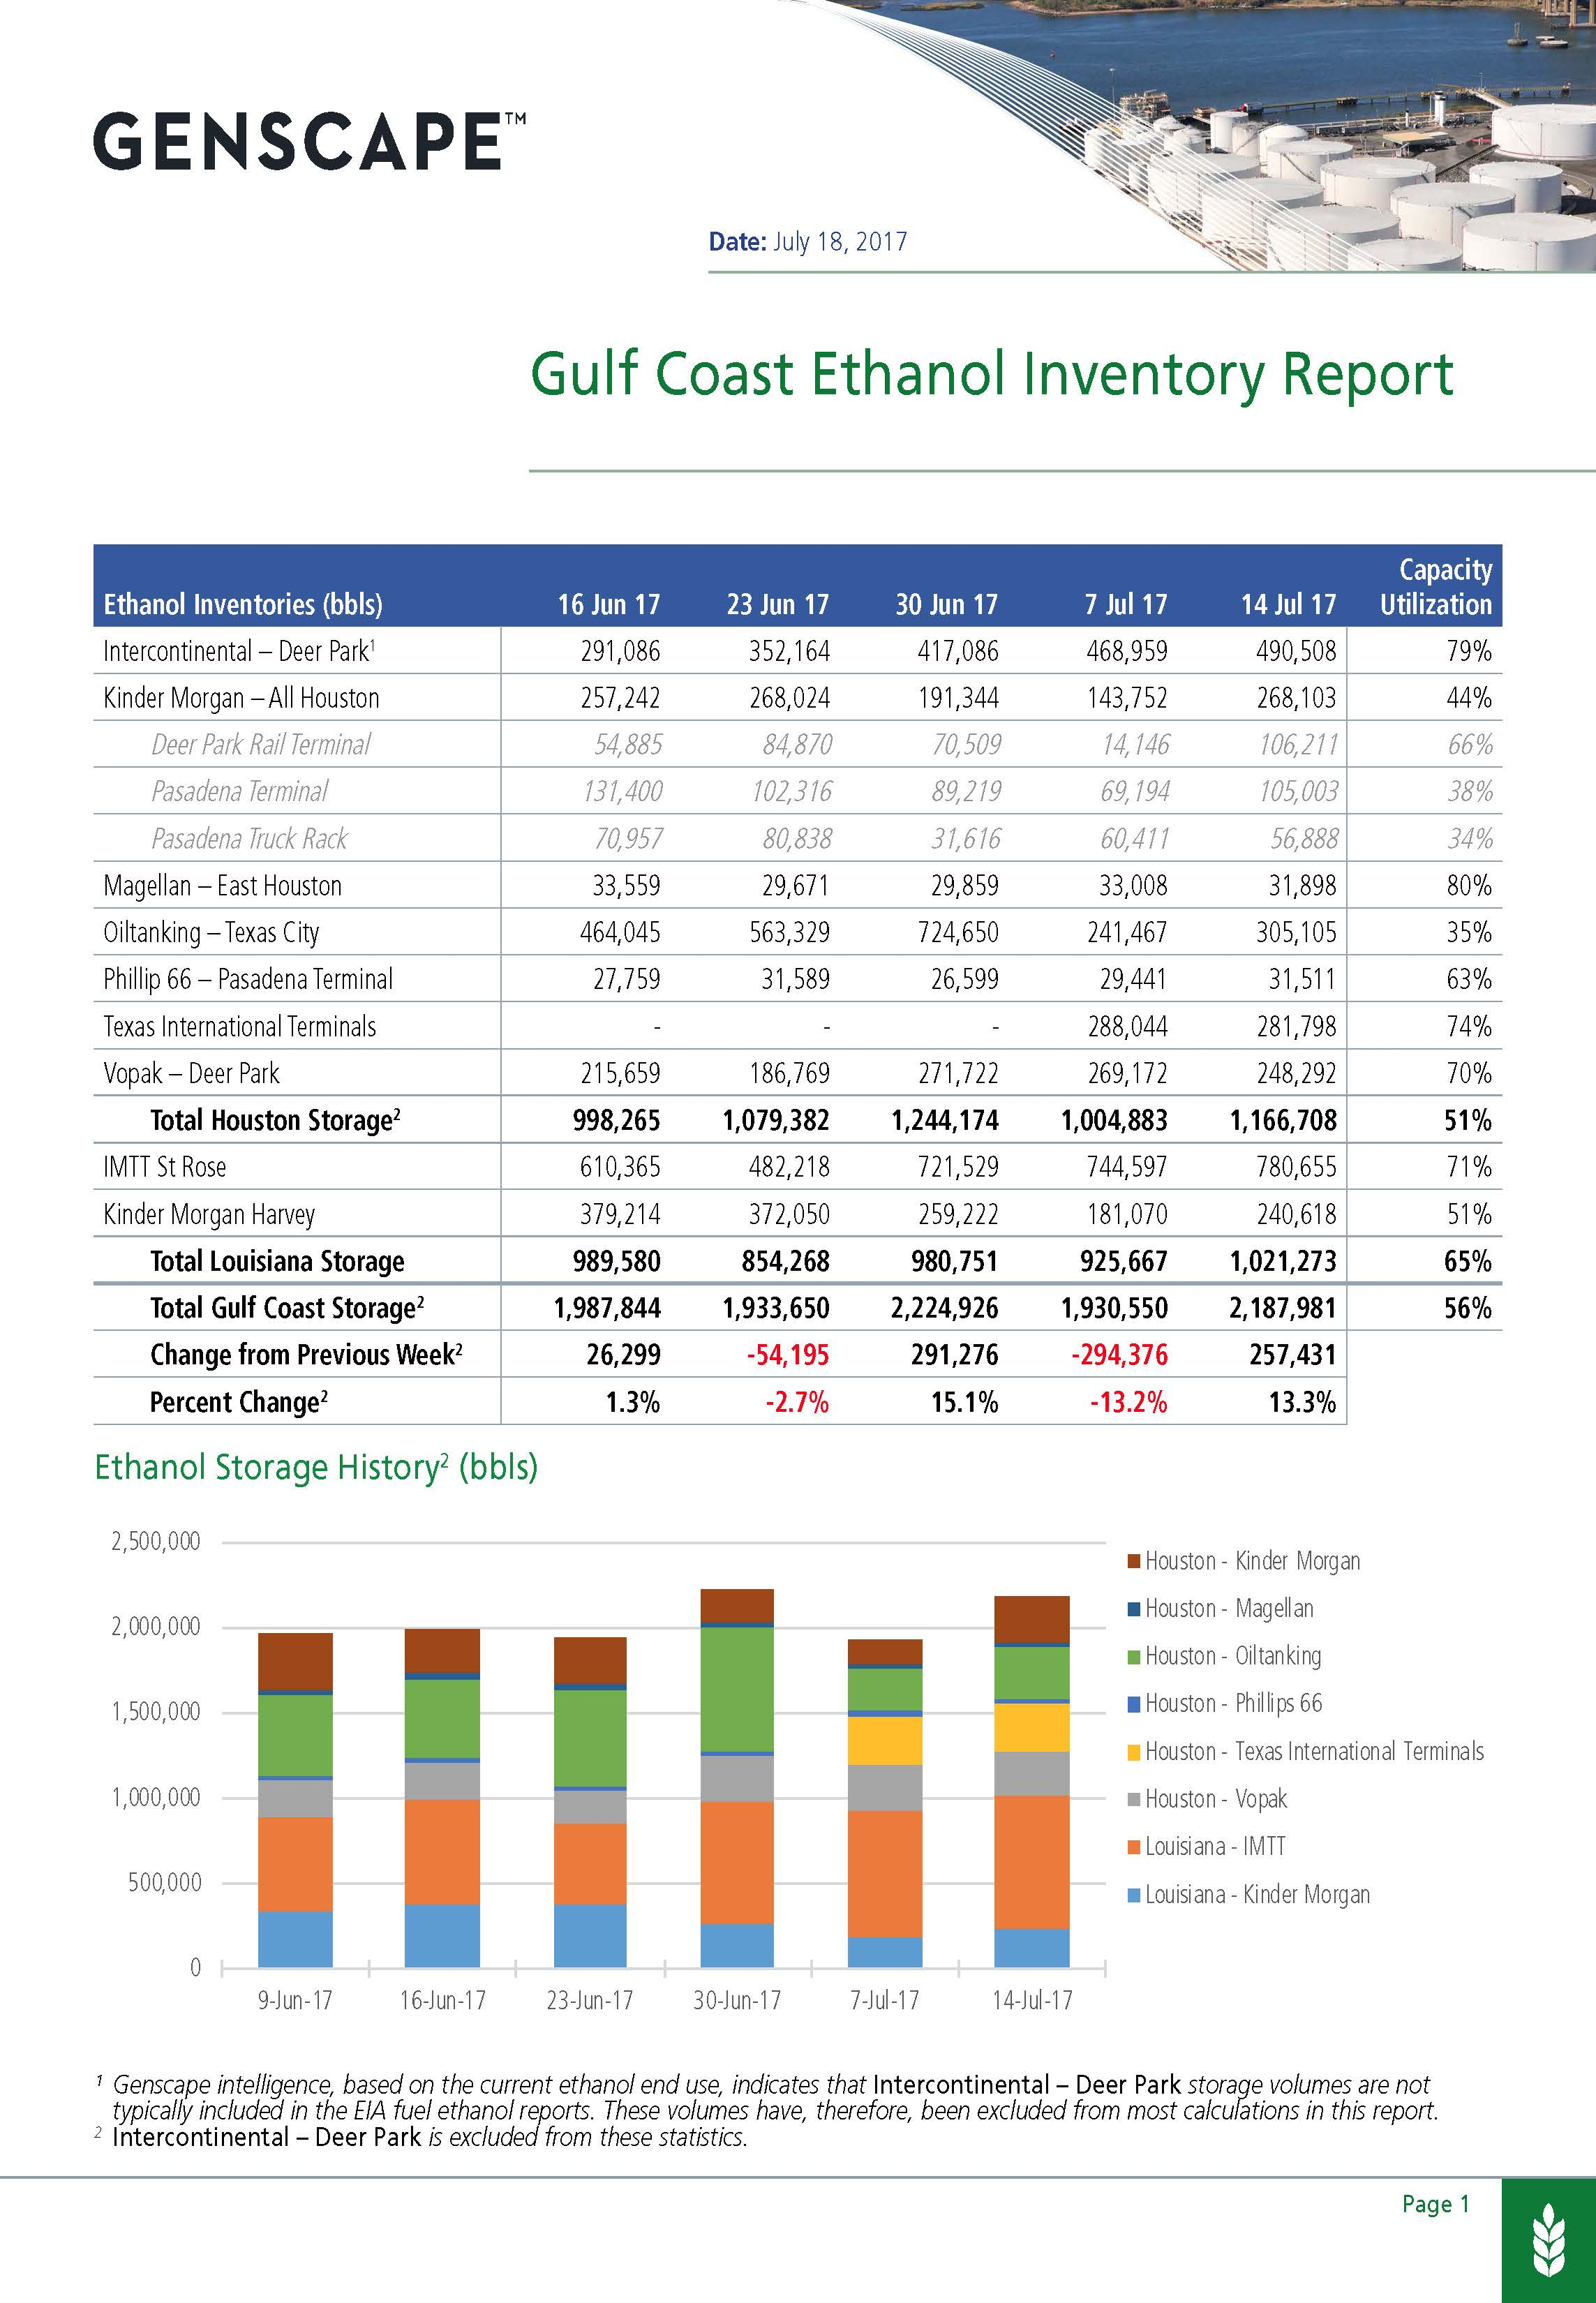 Genscape's U.S. Ethanol Inventory Report Sample